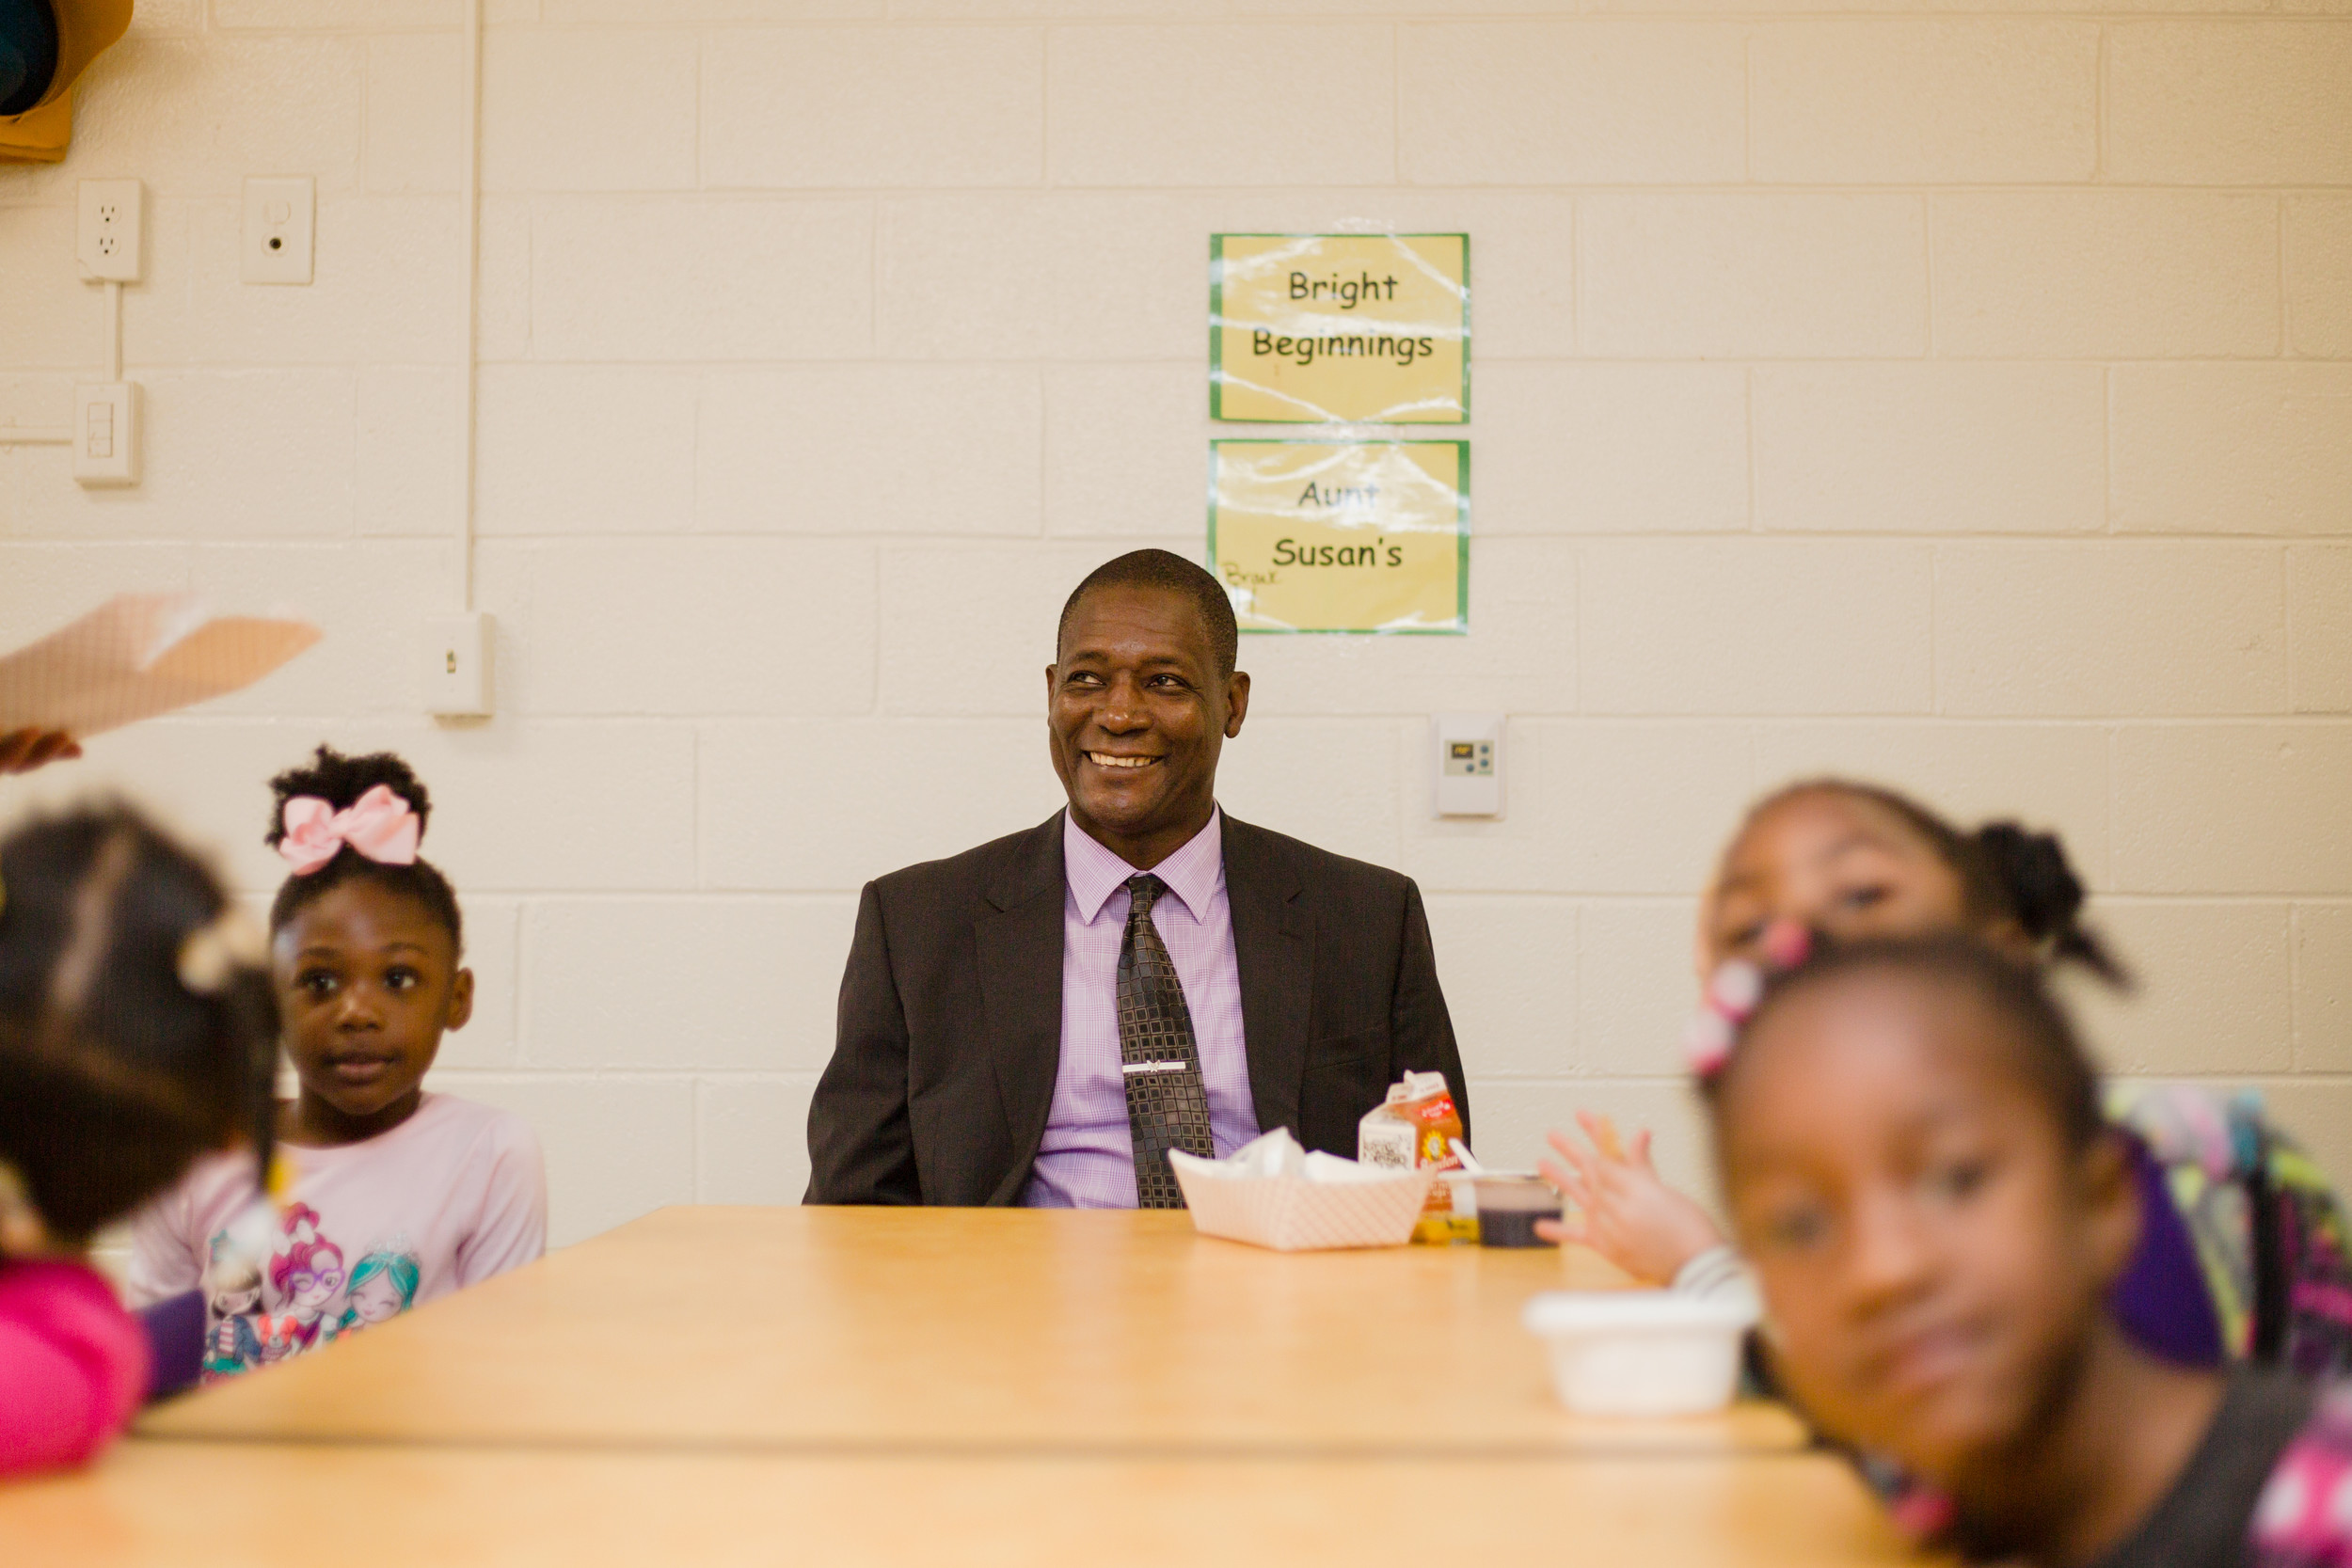 Lefford Fate has breakfast before starting his day as principal for the day at Alice Drive Elementary School on Thursday.